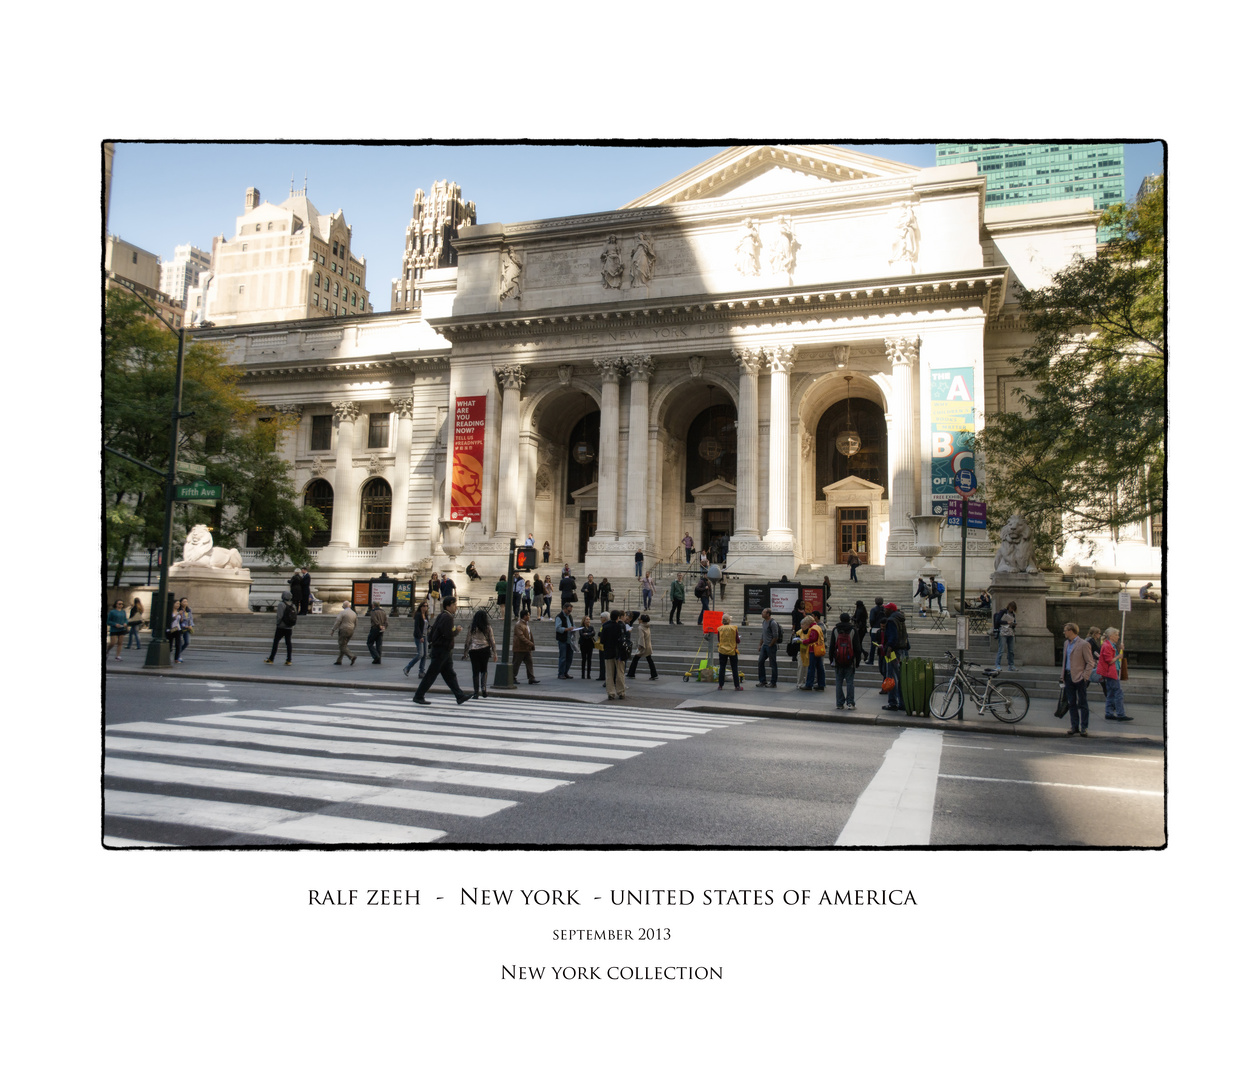 New York Public Library no.1